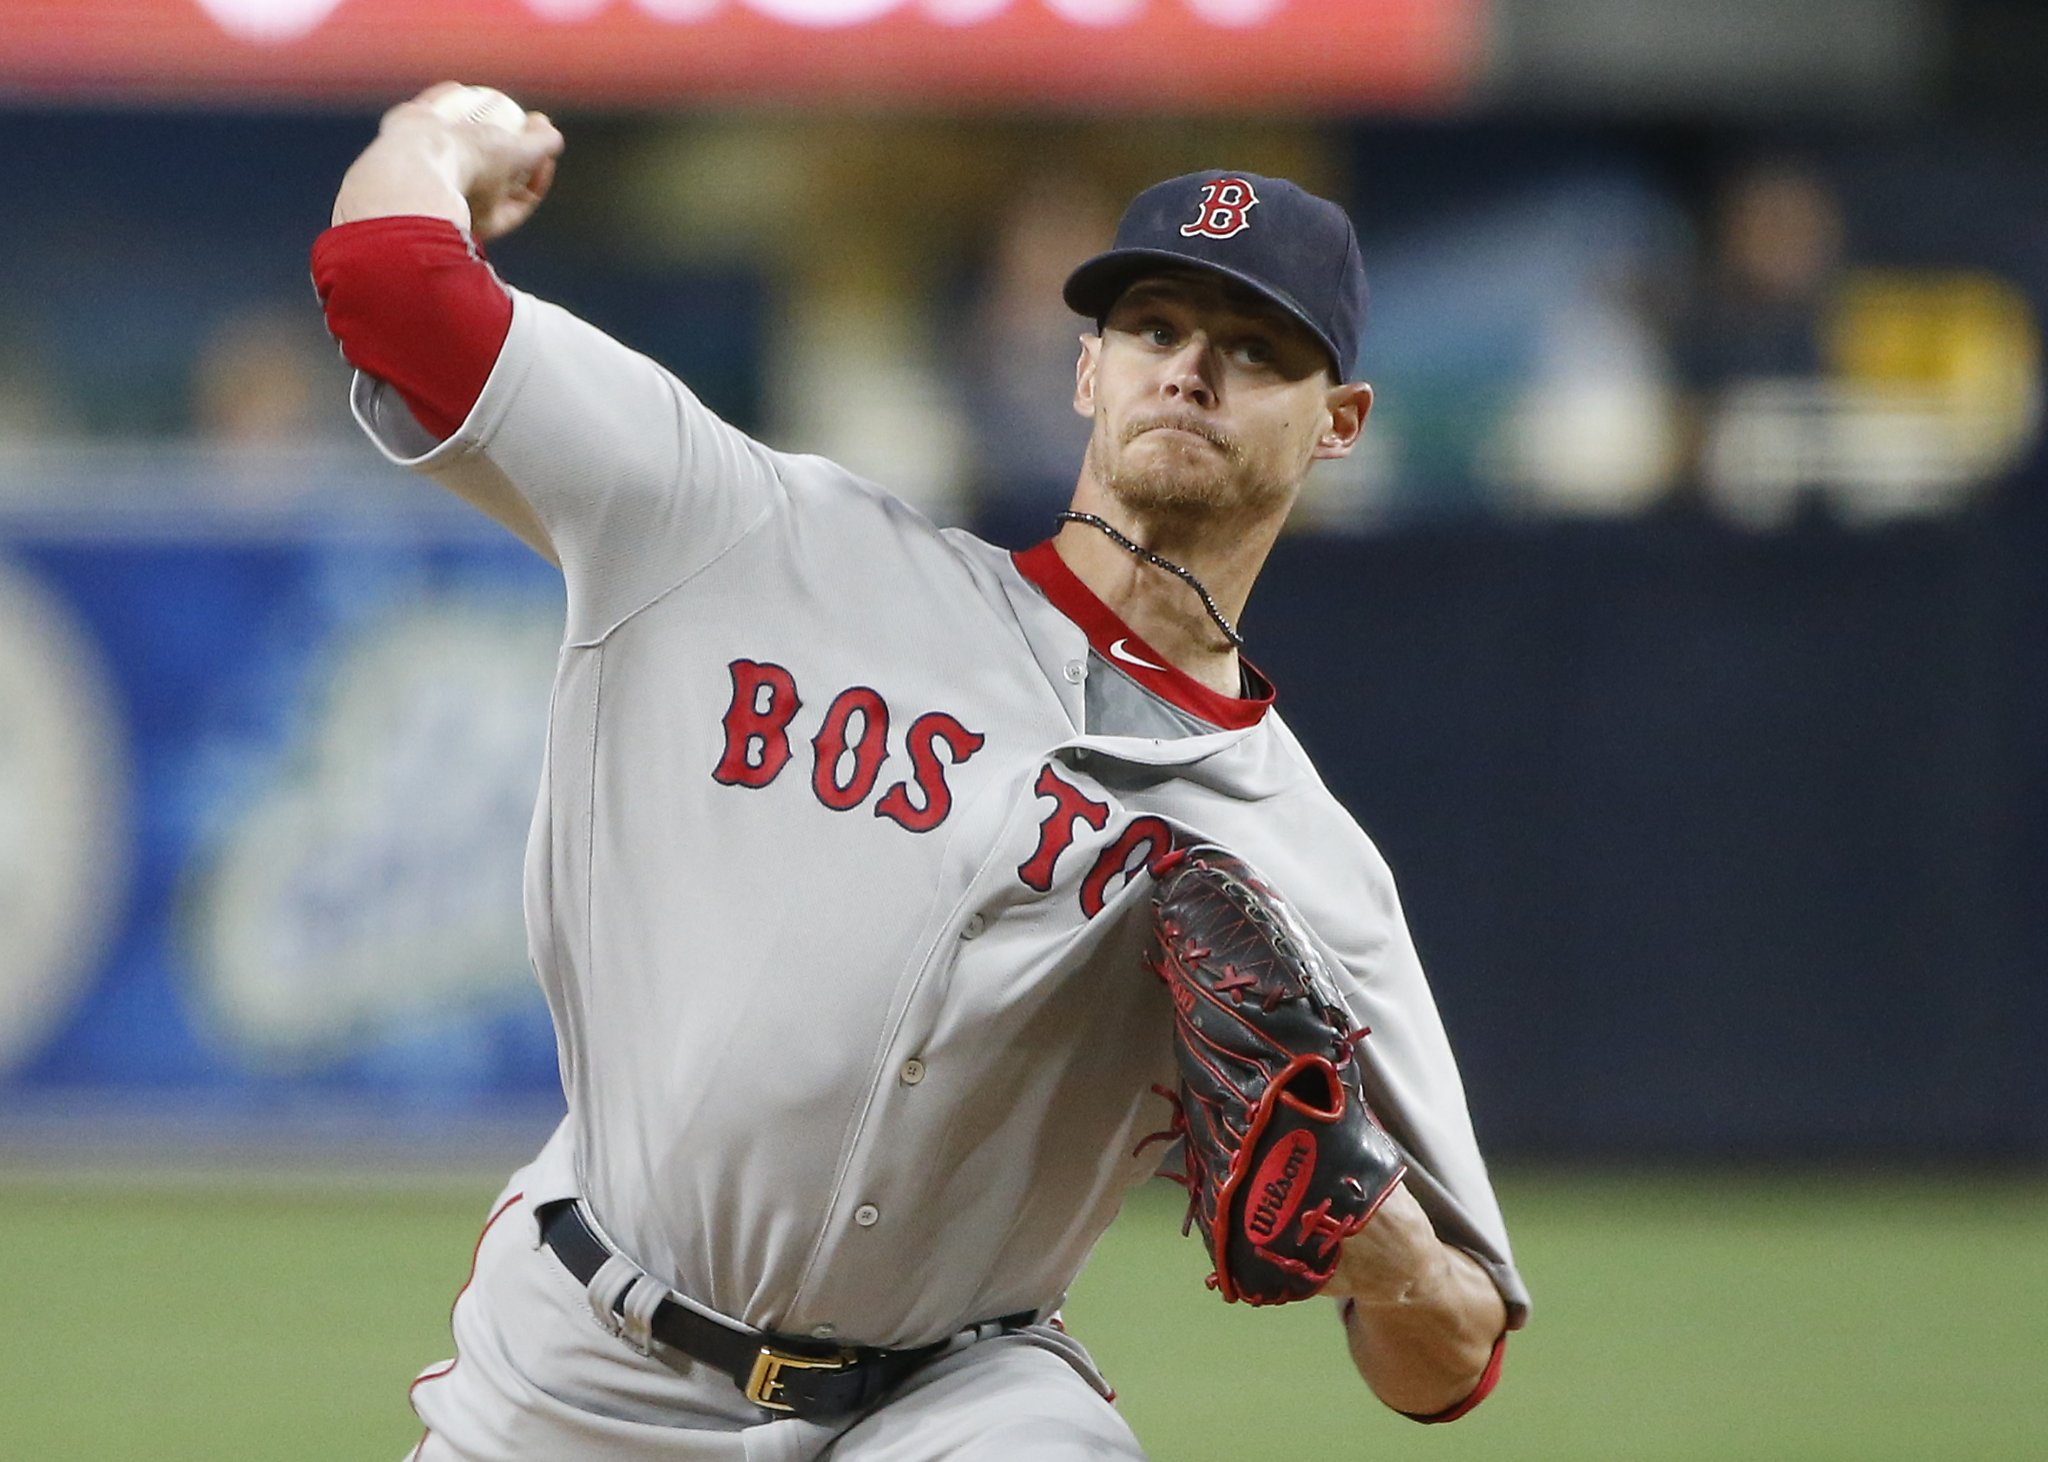 an overview of the scores of mark loretta in boston red sox Scores , standings, rumors day second baseman for the boston red sox while dustin pedroia than pedroia to start a boston opener at second since mark.